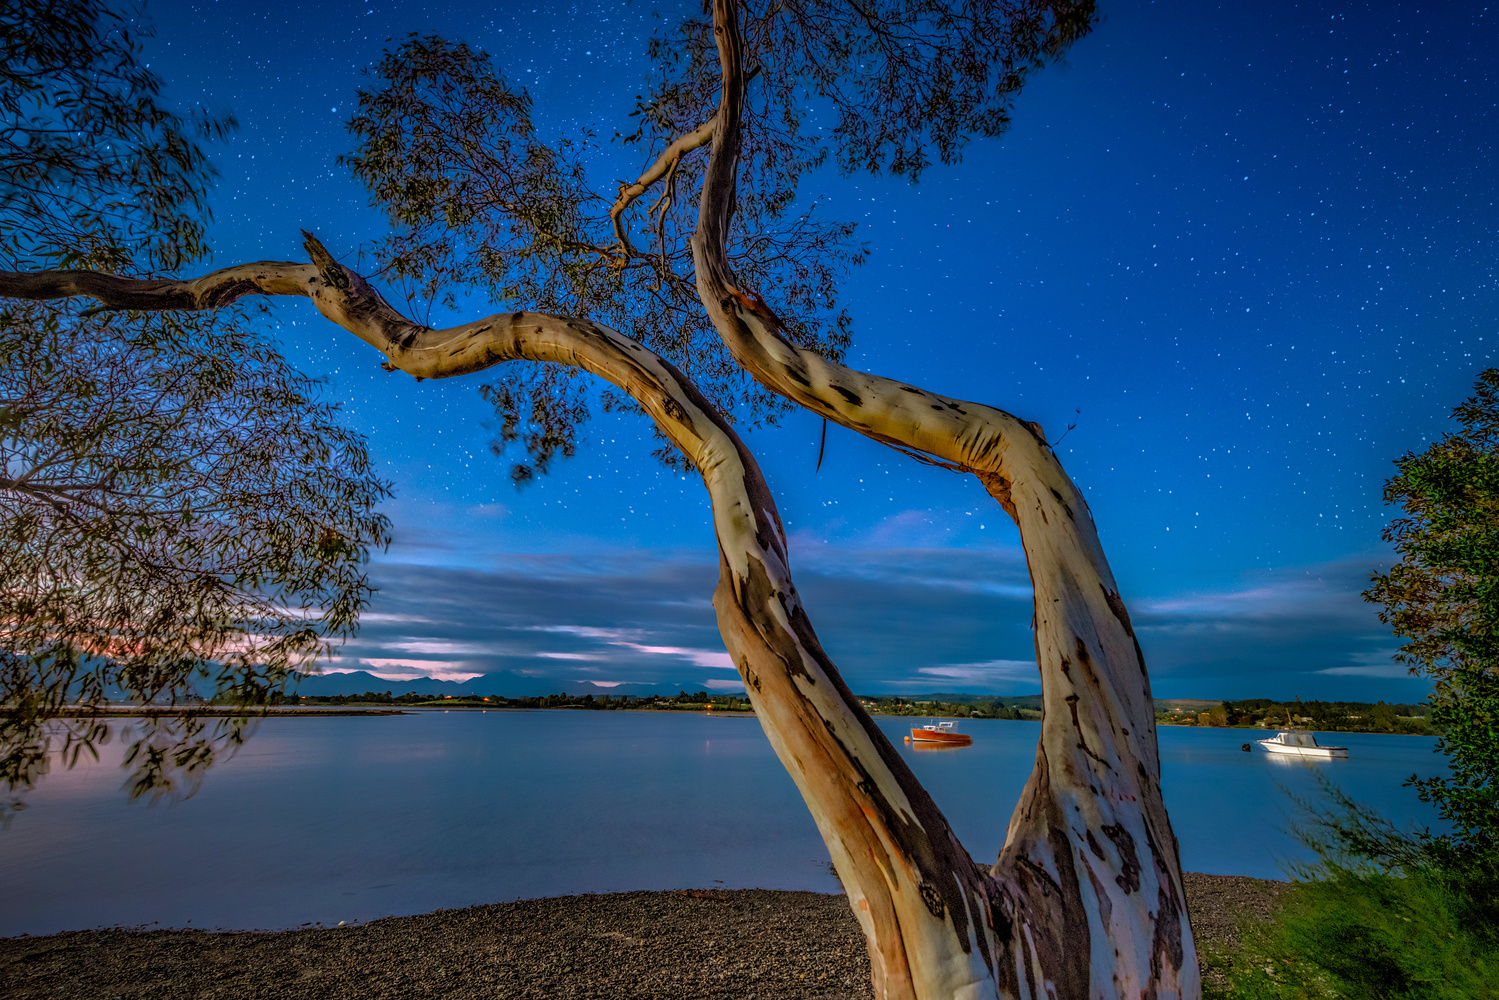 Branching Out by Alex Hill